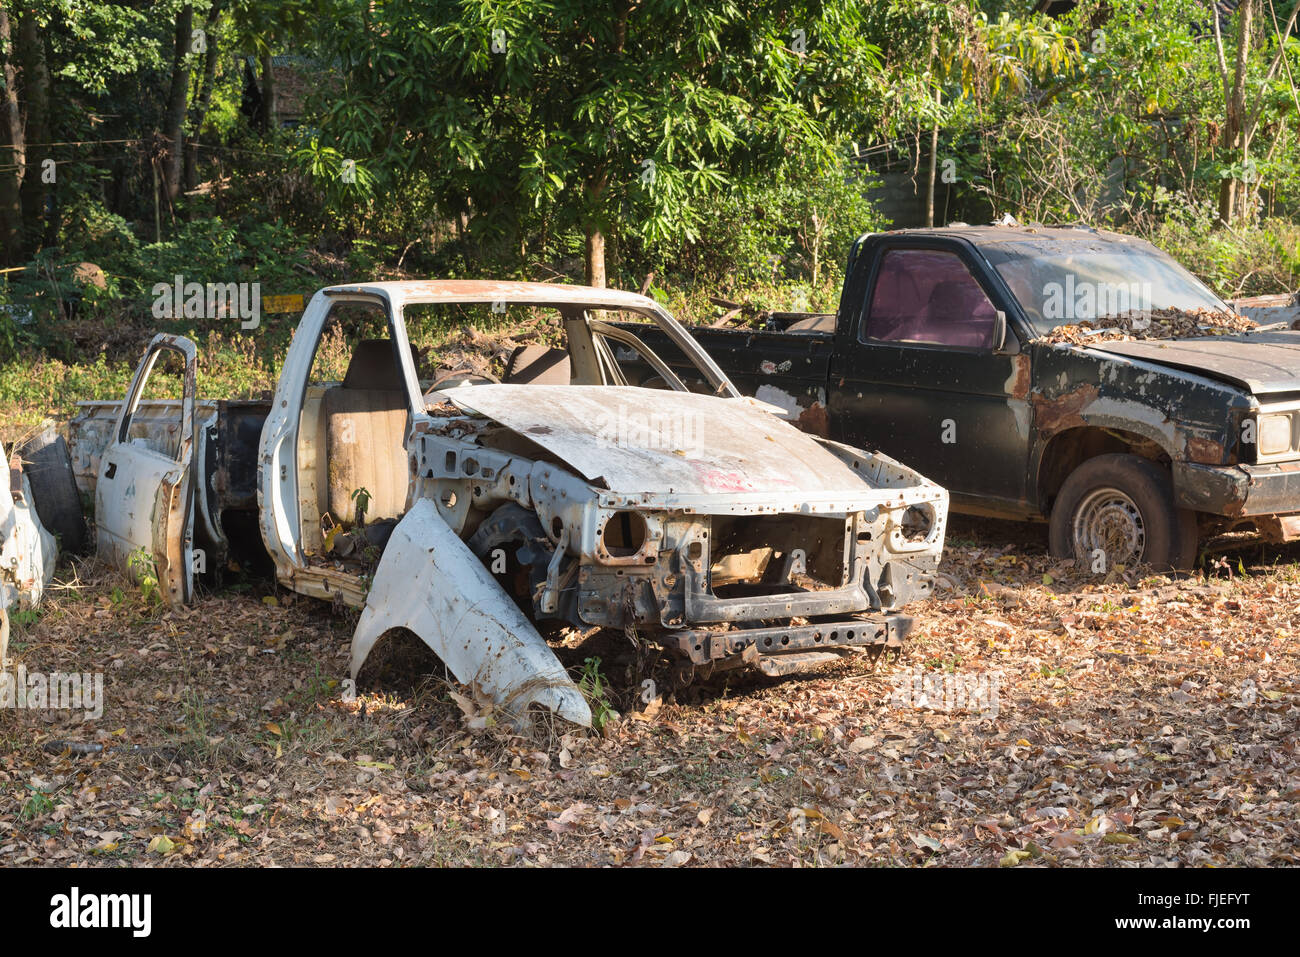 Old Rusty Wrecked Car Stock Photos & Old Rusty Wrecked Car Stock ...